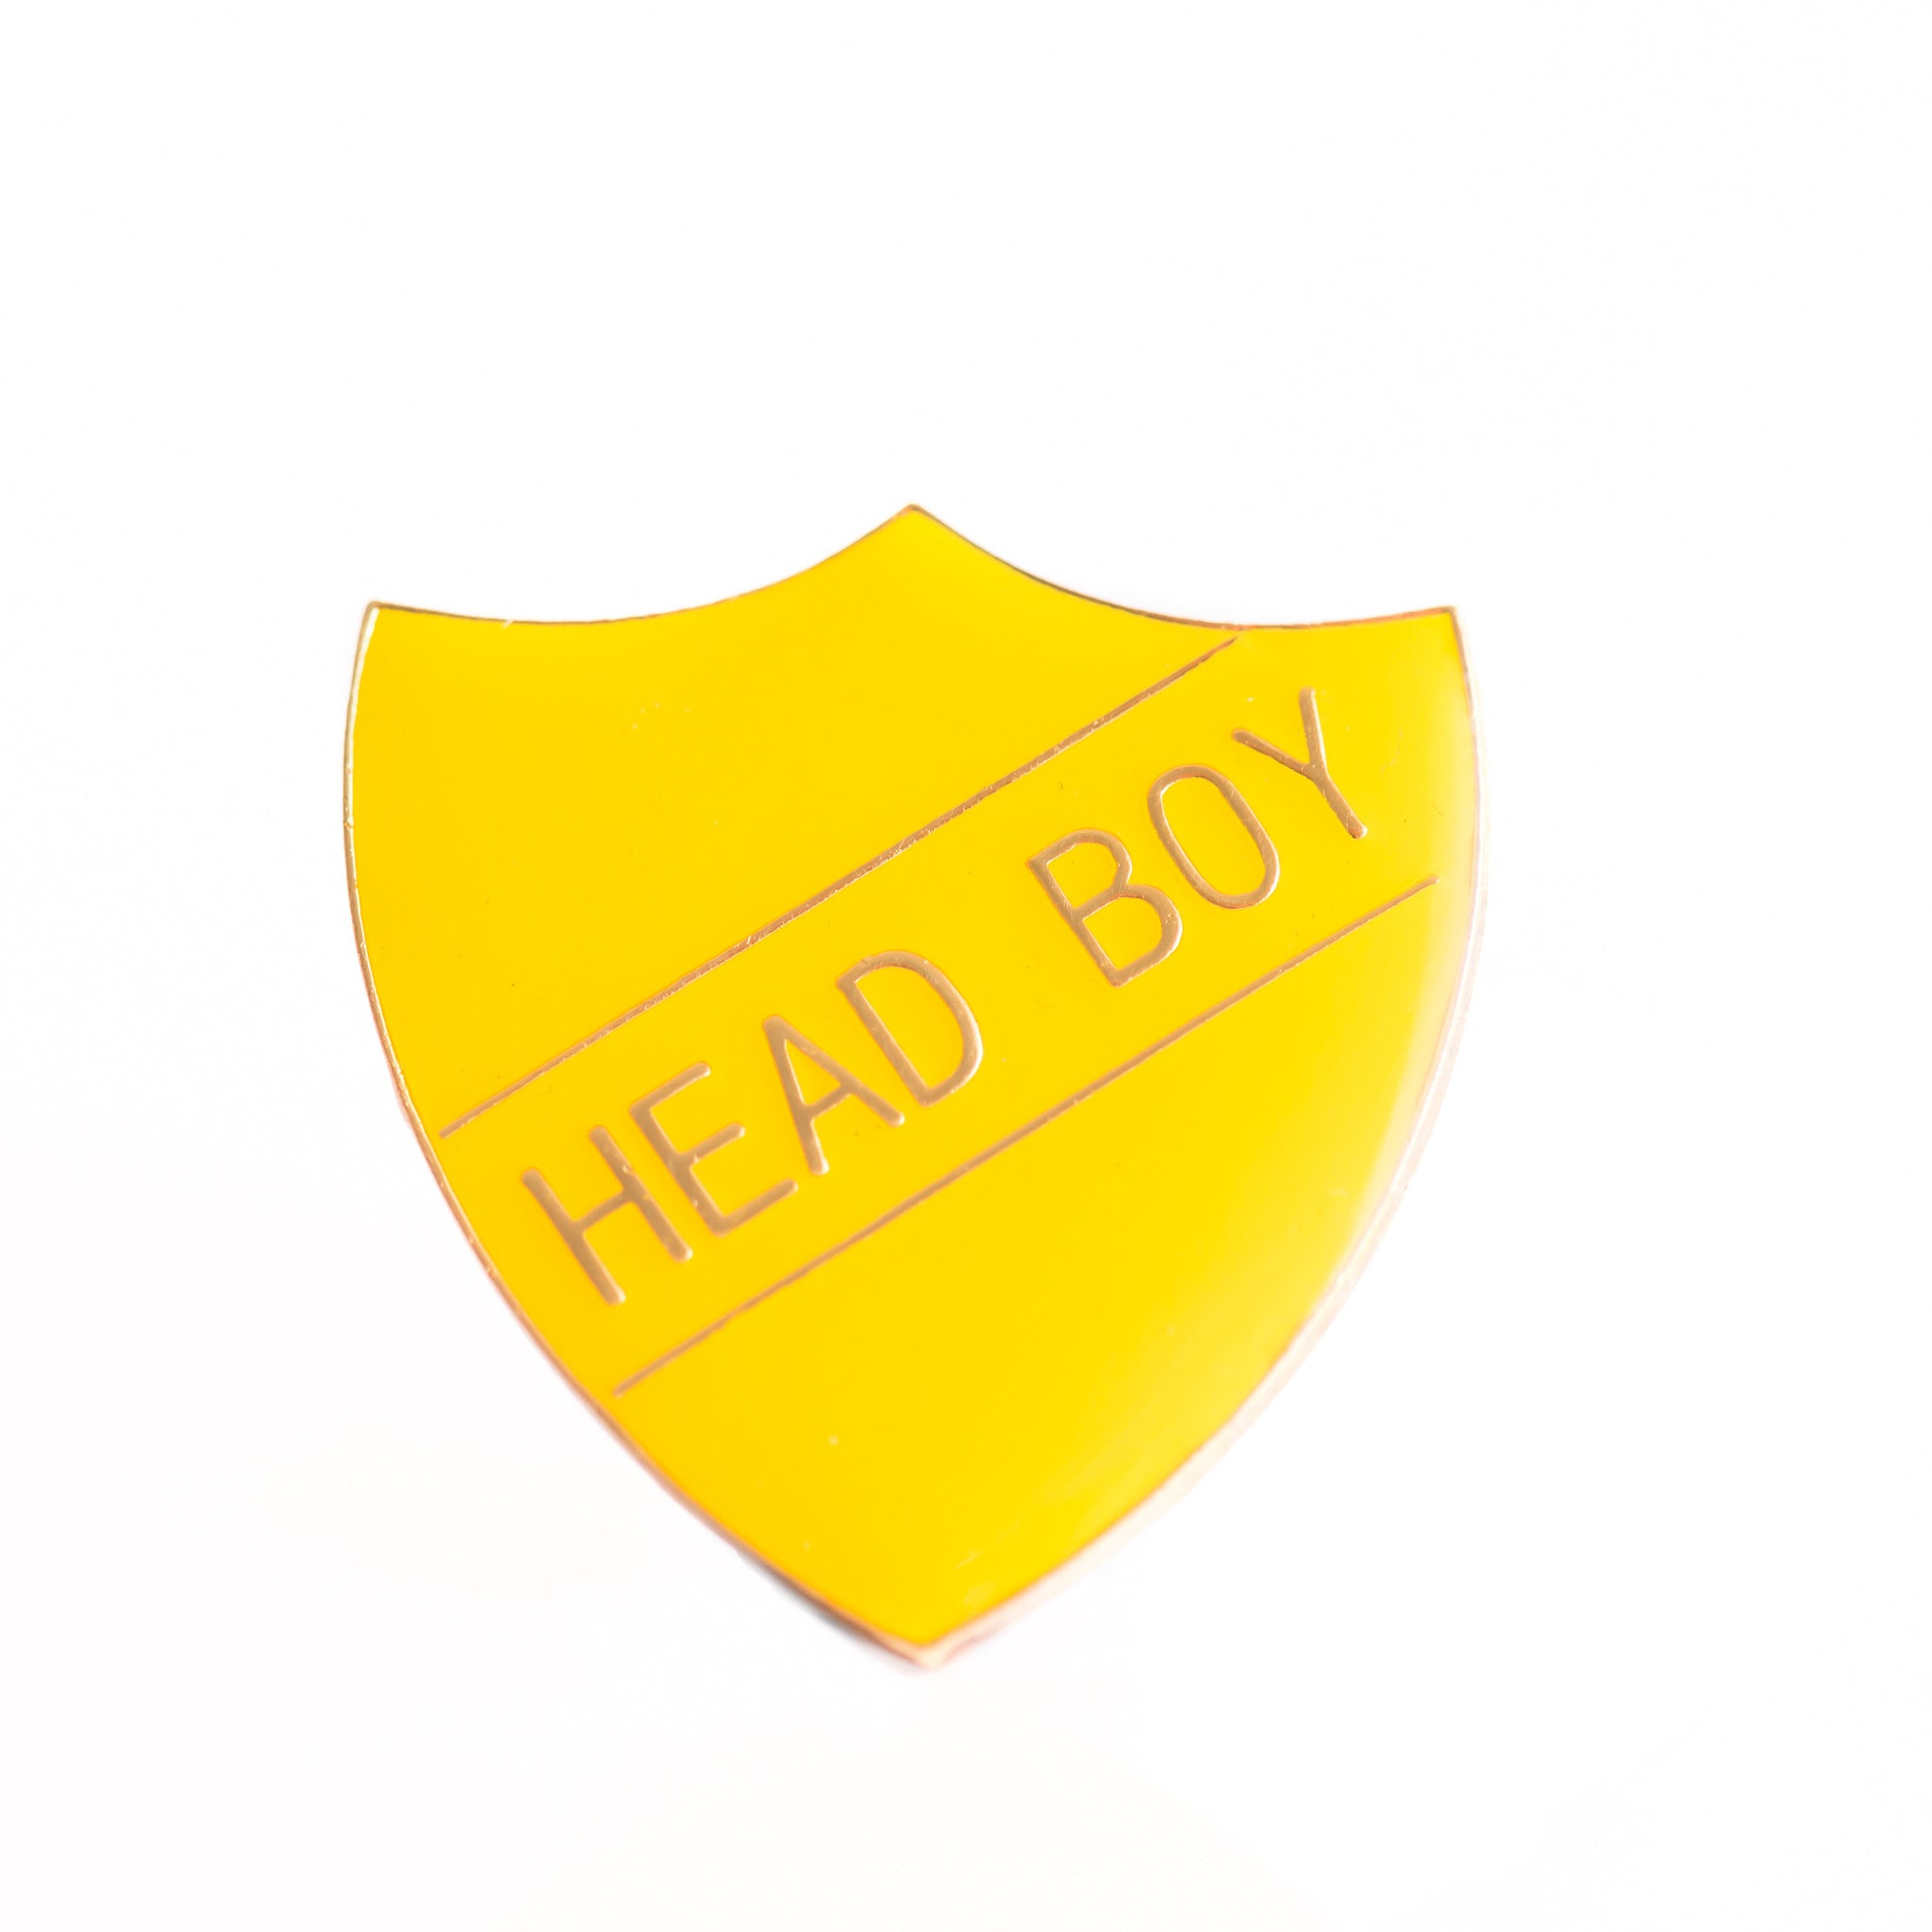 Enamel Shield Pin Badge - Head Boy